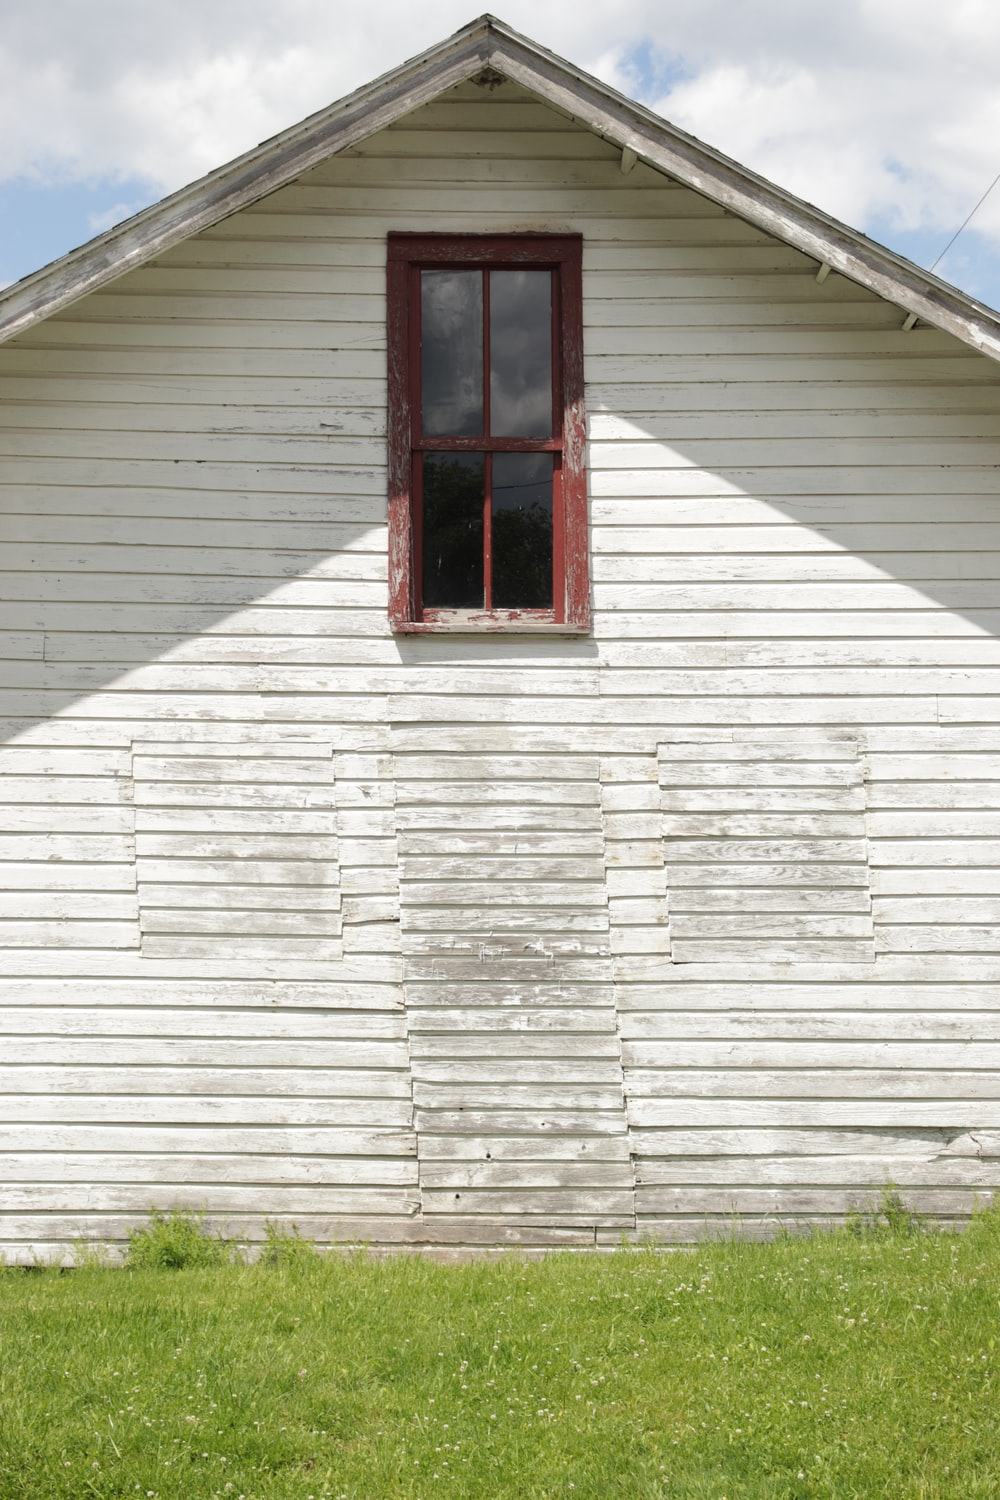 red wooden window on white wooden house